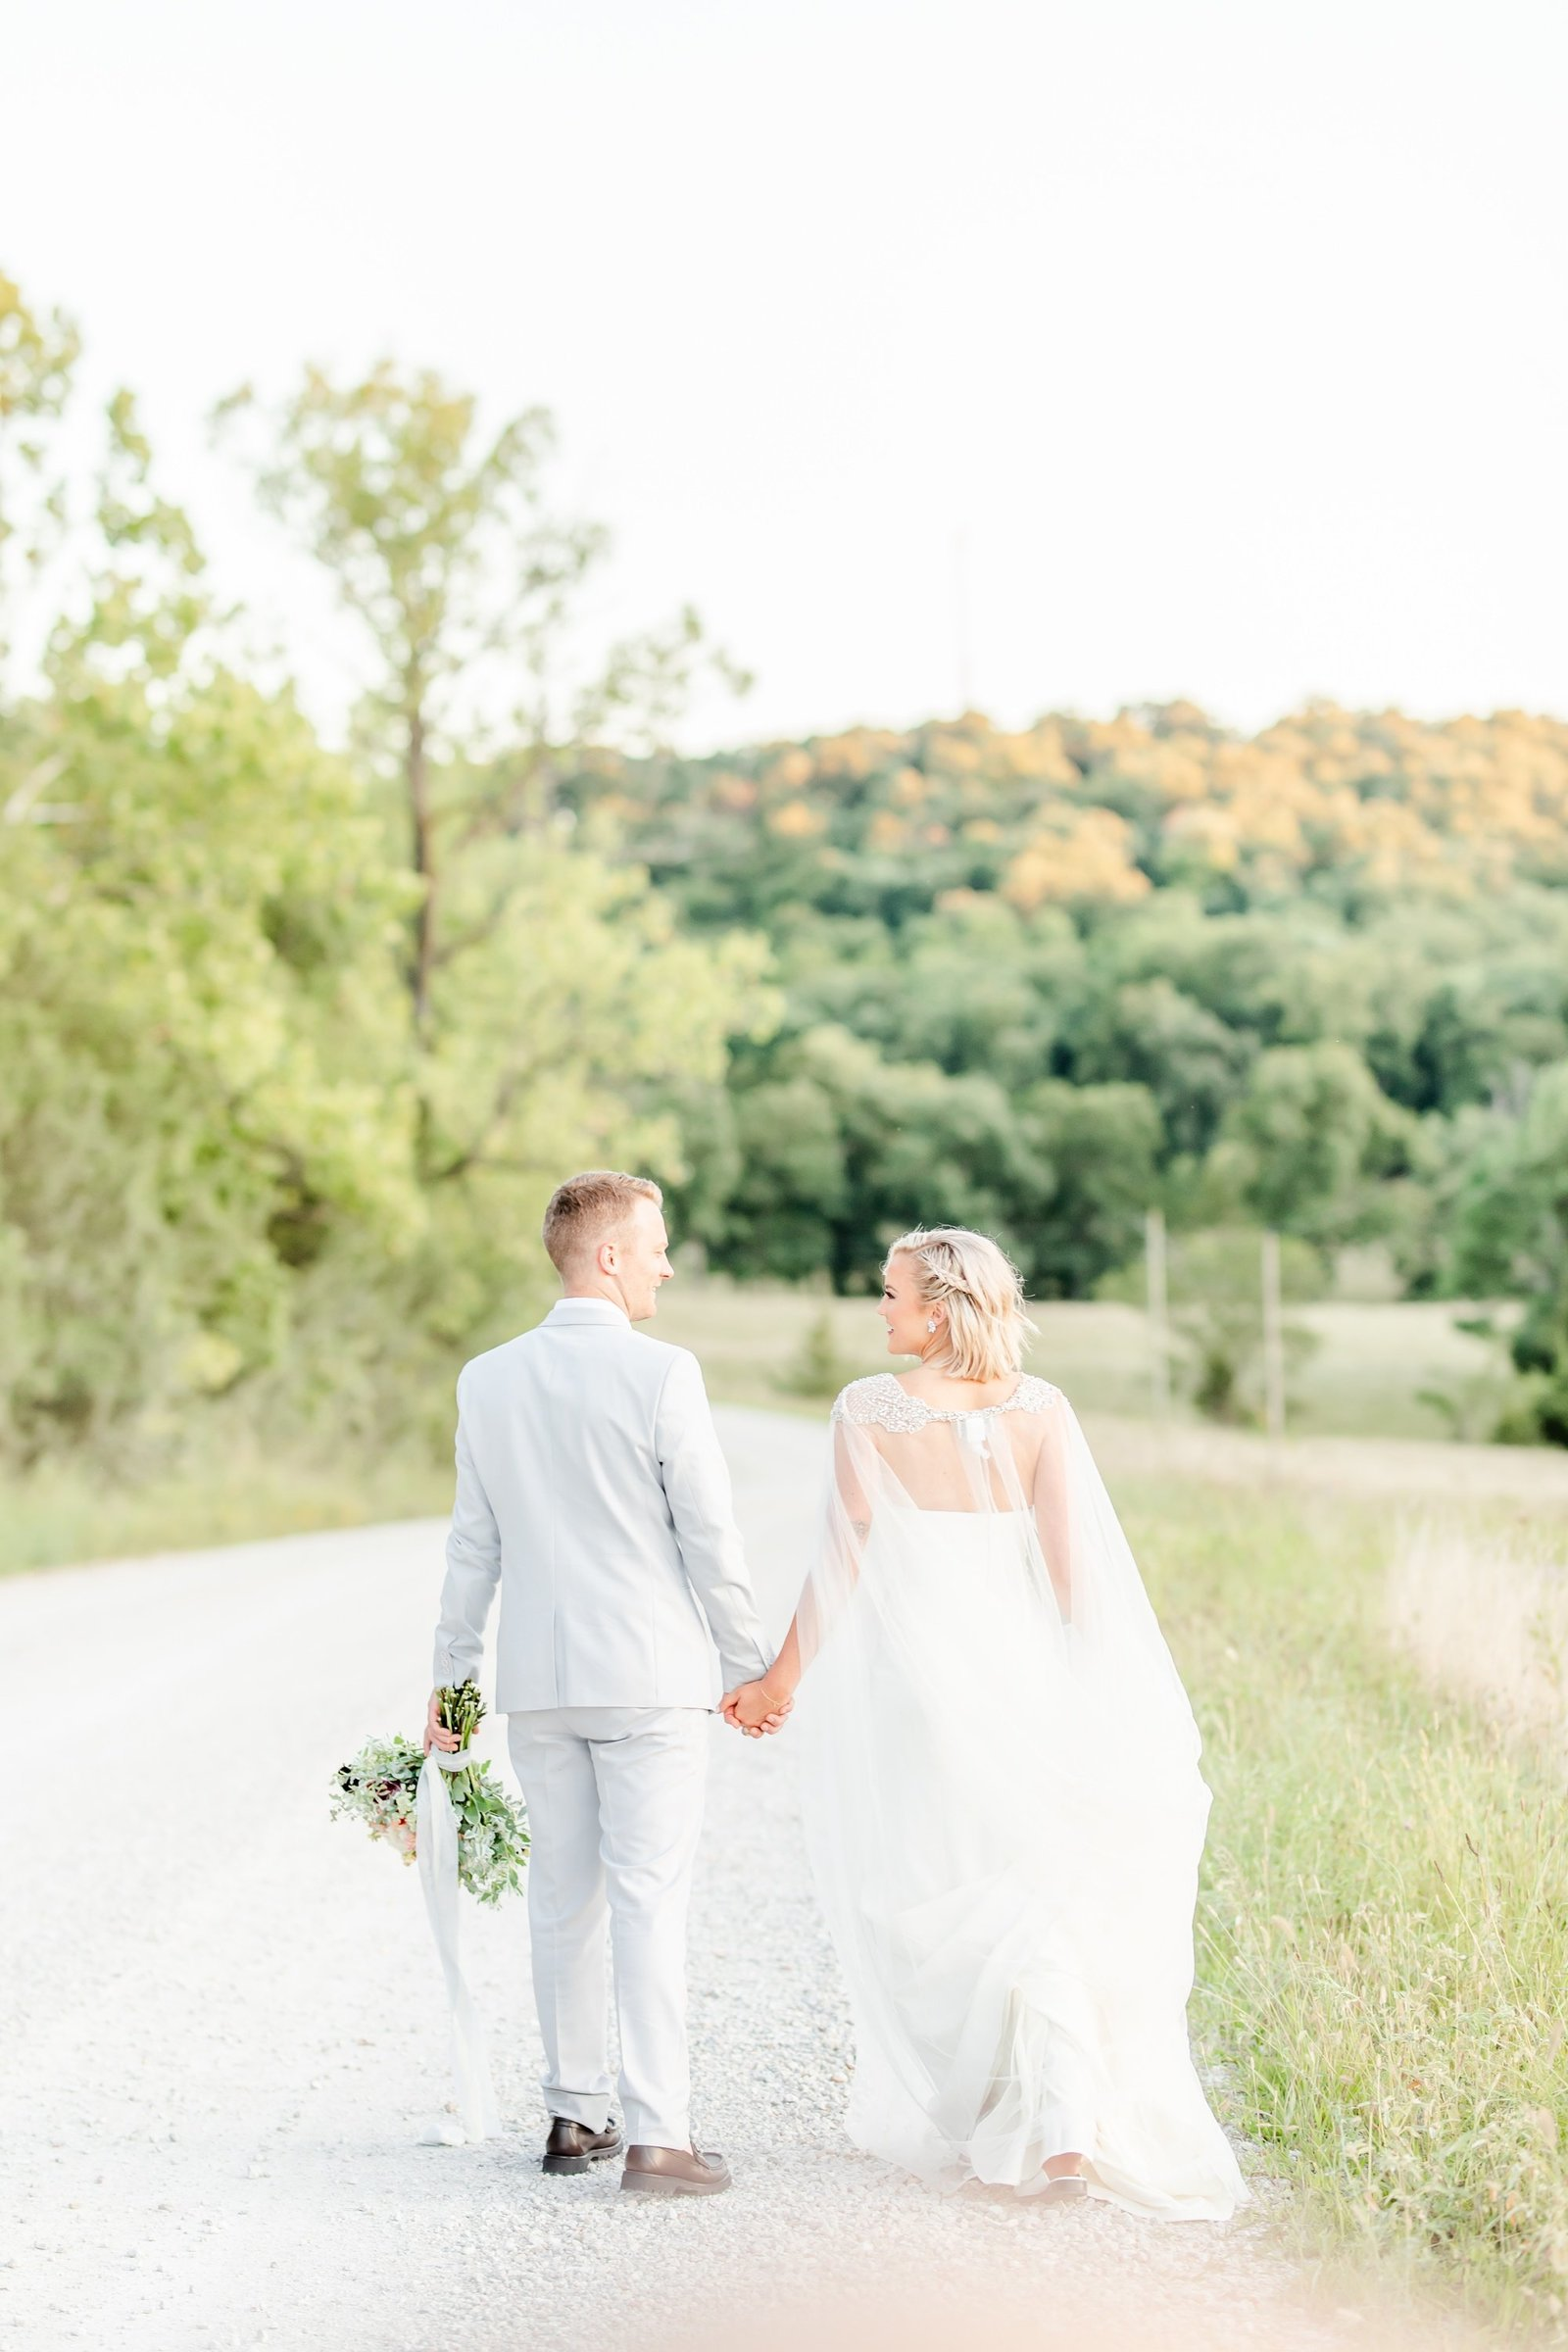 Emily Broadbent Photography St Louis Wedding Photographer_0018